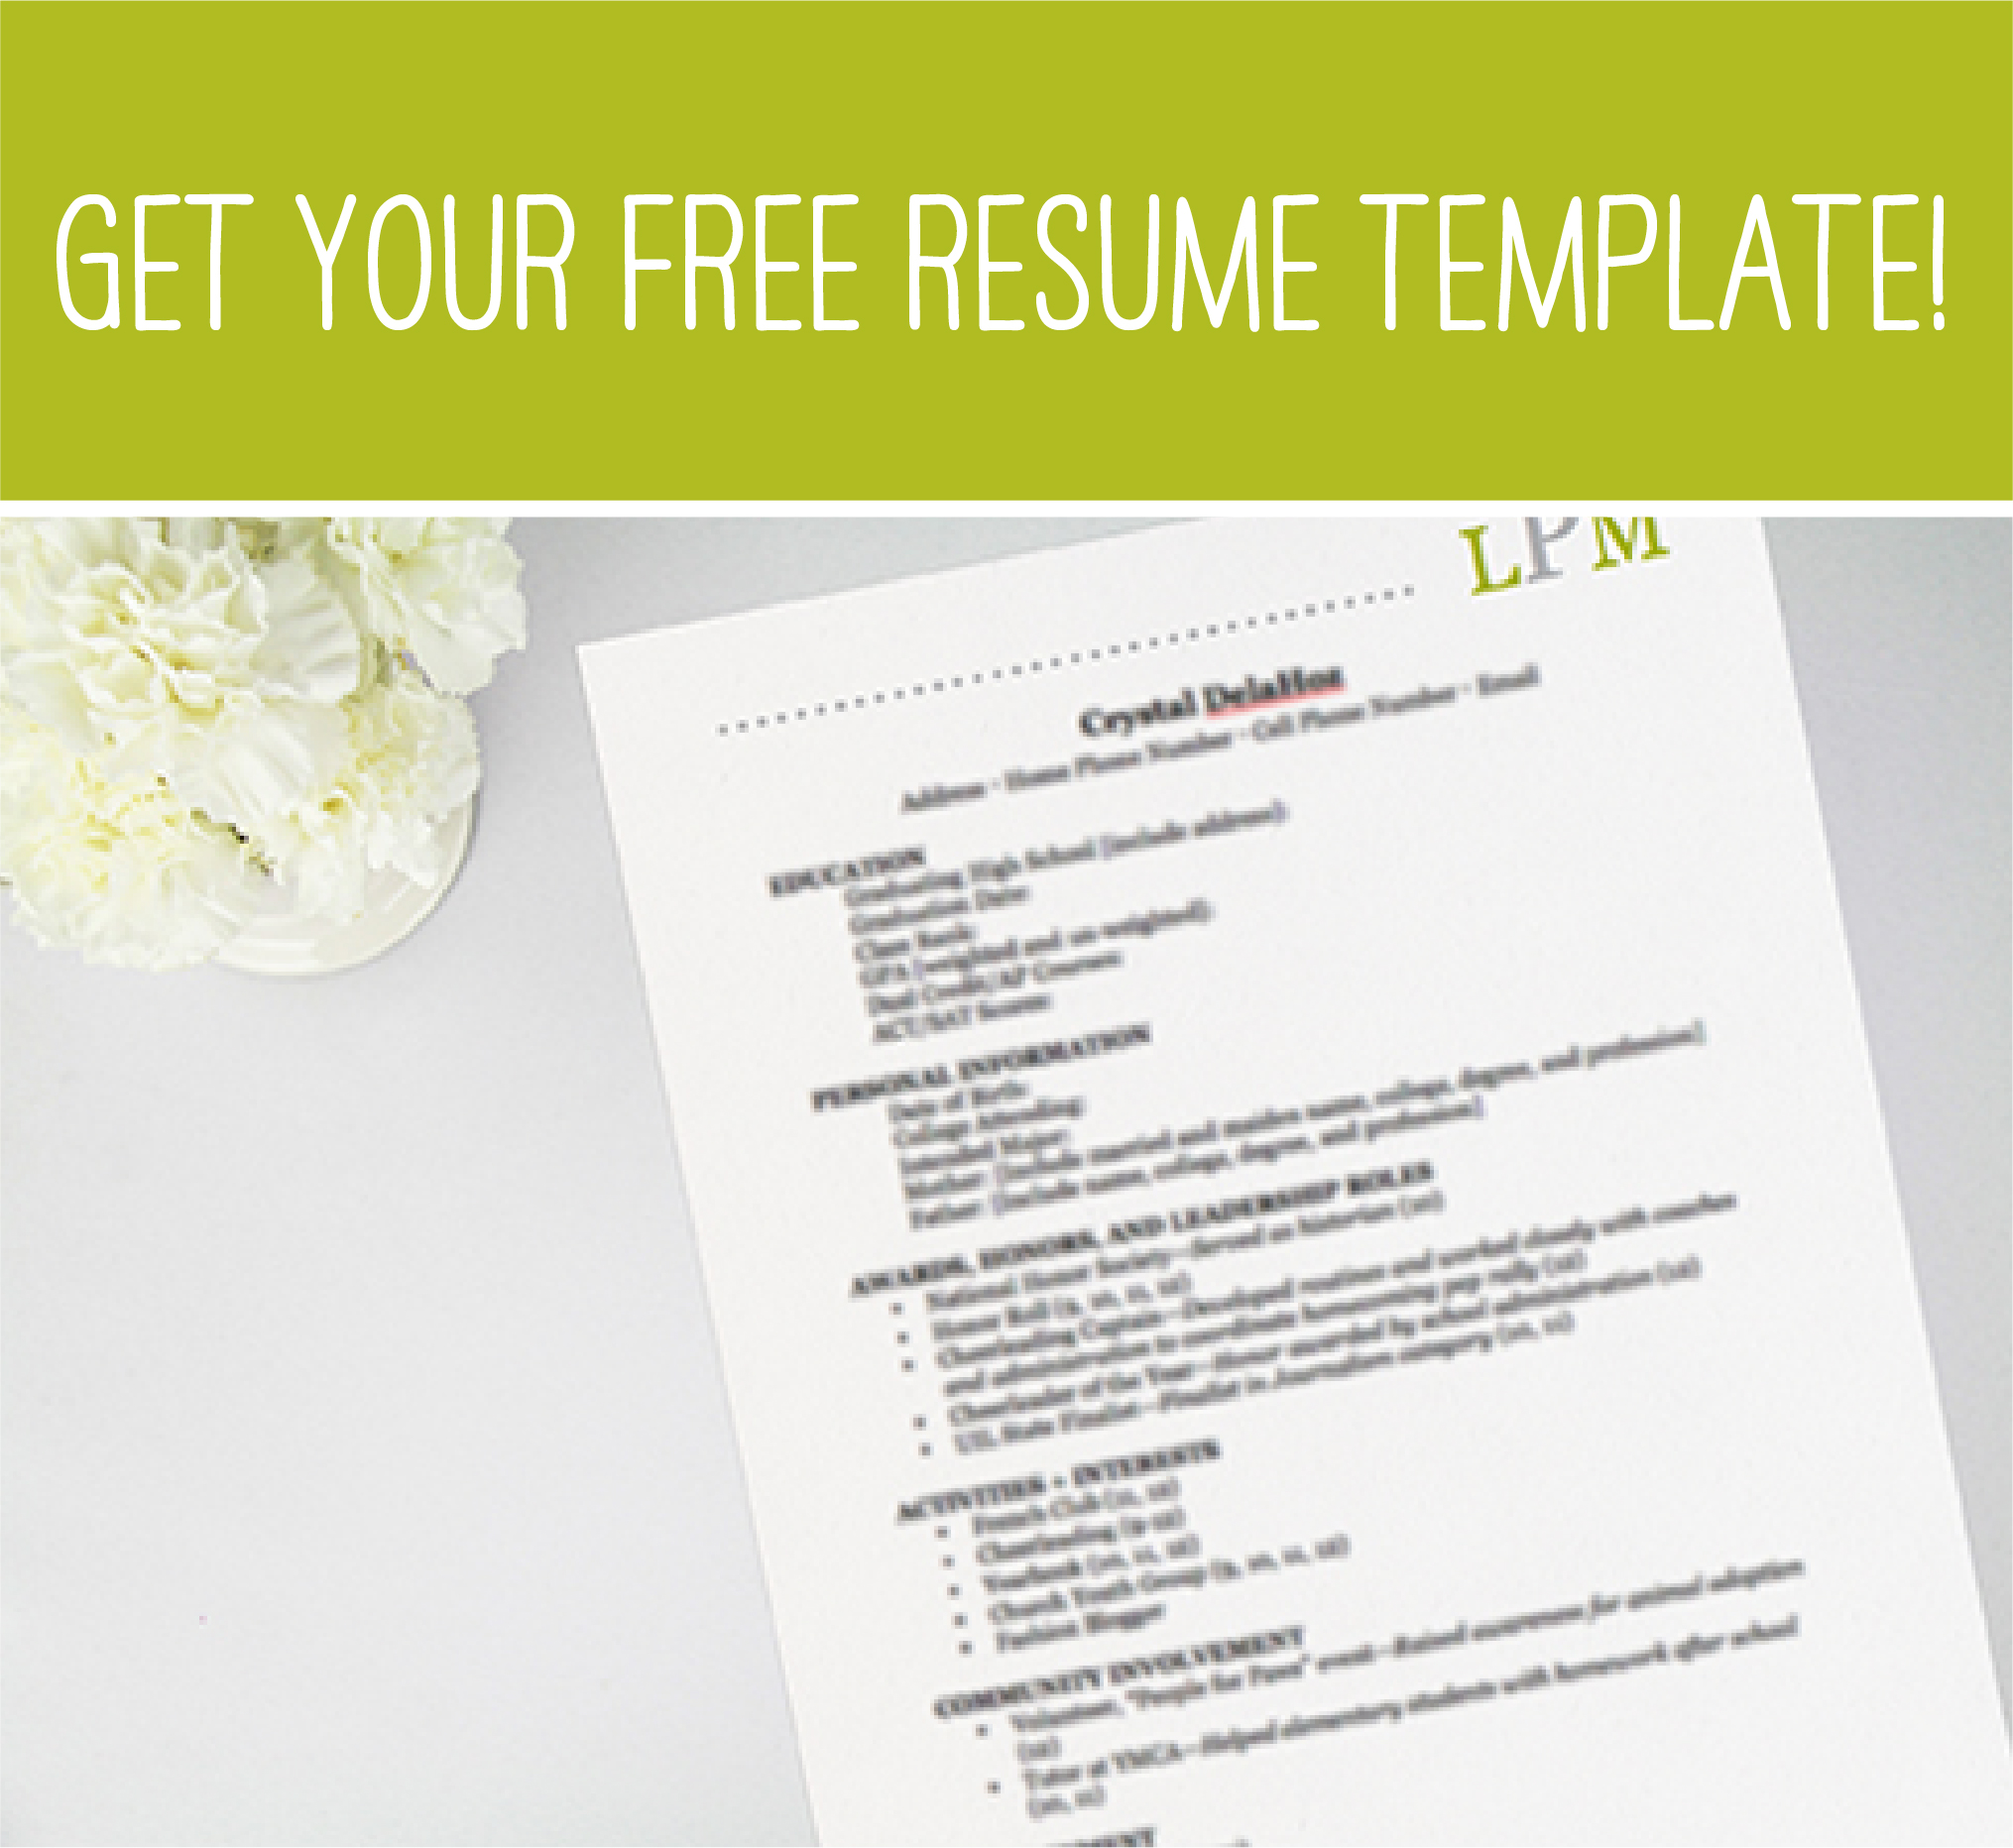 perfecting your resume senior portrait photographer in fort for fraternity rushtemplate Resume Resume For Fraternity Rush